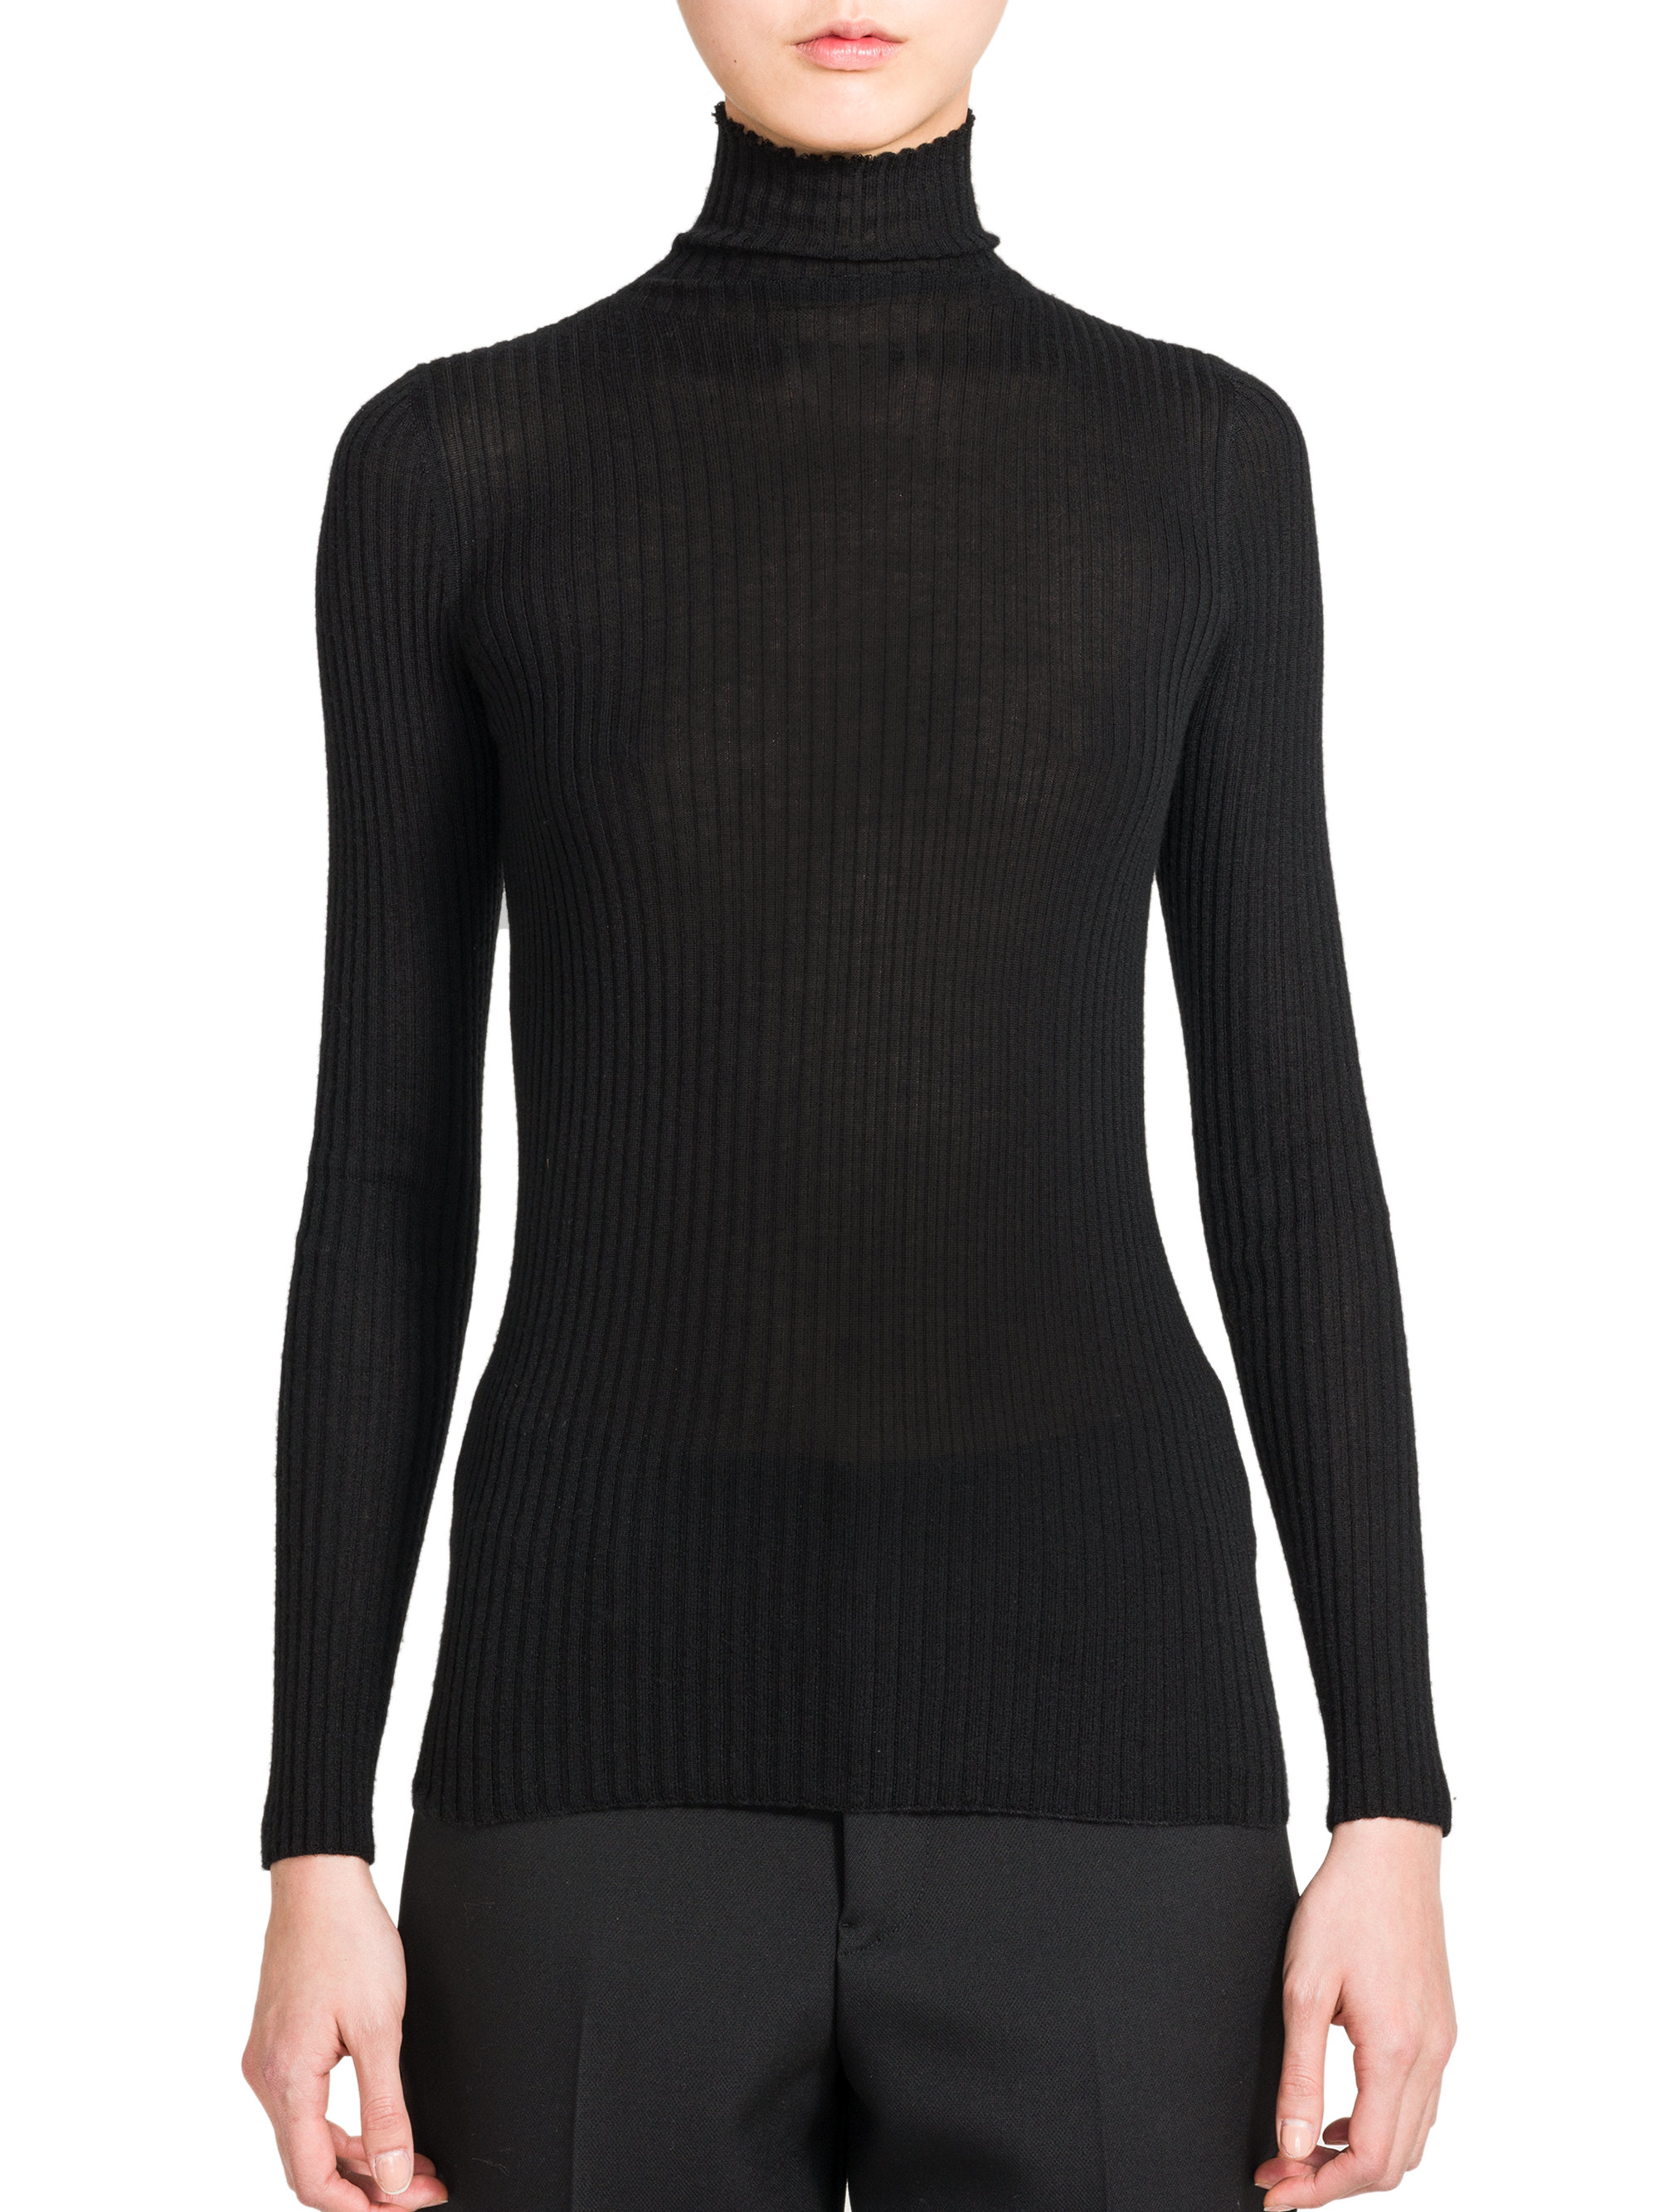 Warm up in luxury with cardigan sweaters for women from EILEEN FISHER. Shop our selection of eco-conscious cozy sweaters and cardigans.